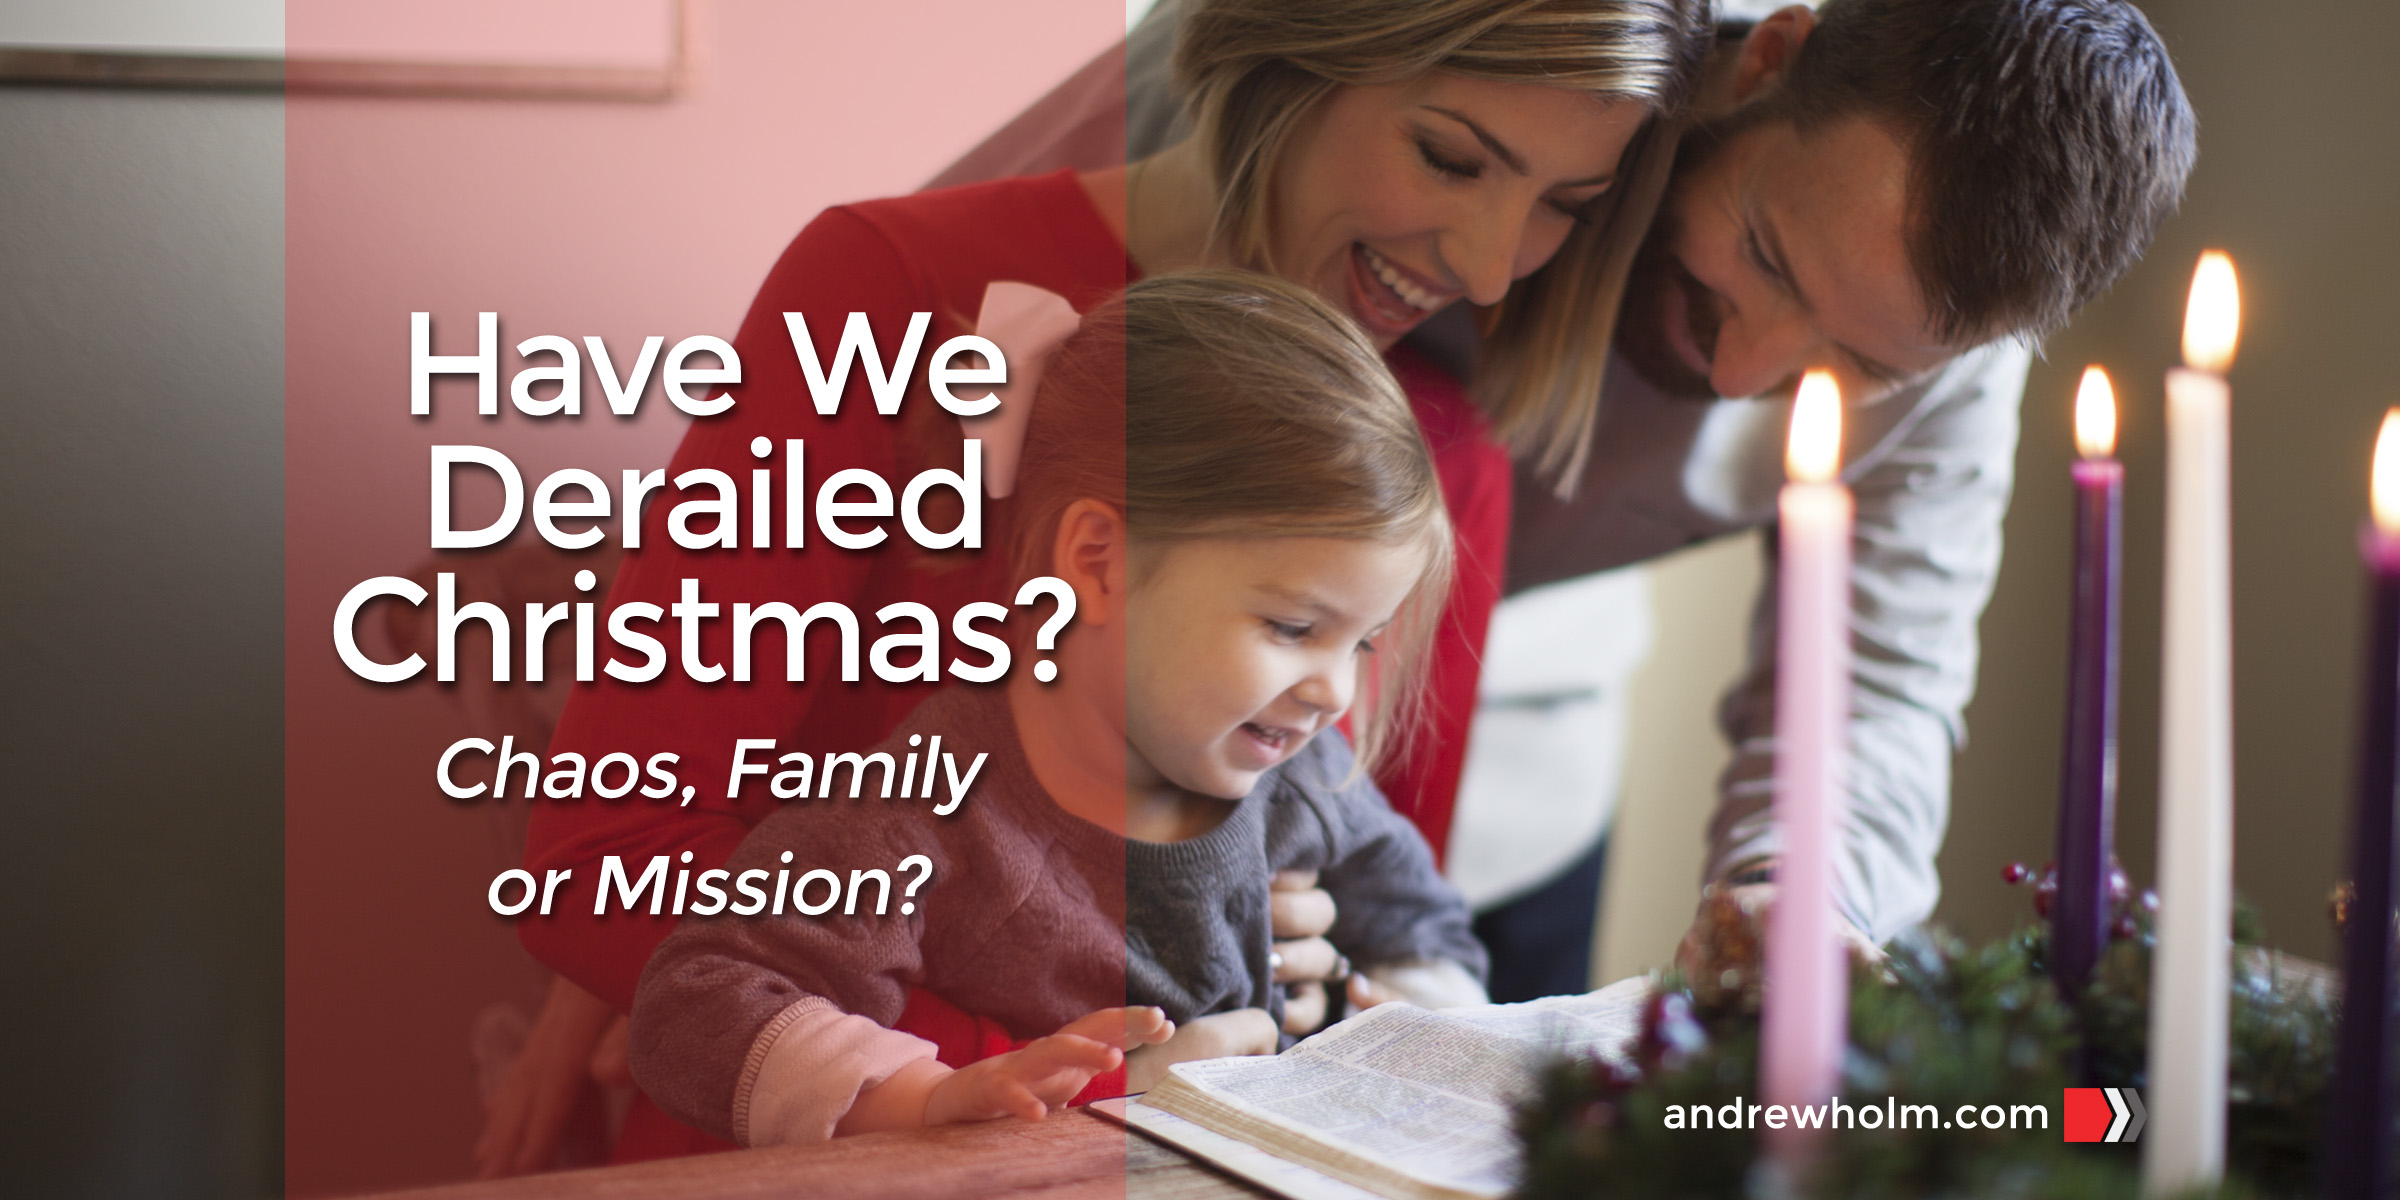 Have We Derailed Christmas?